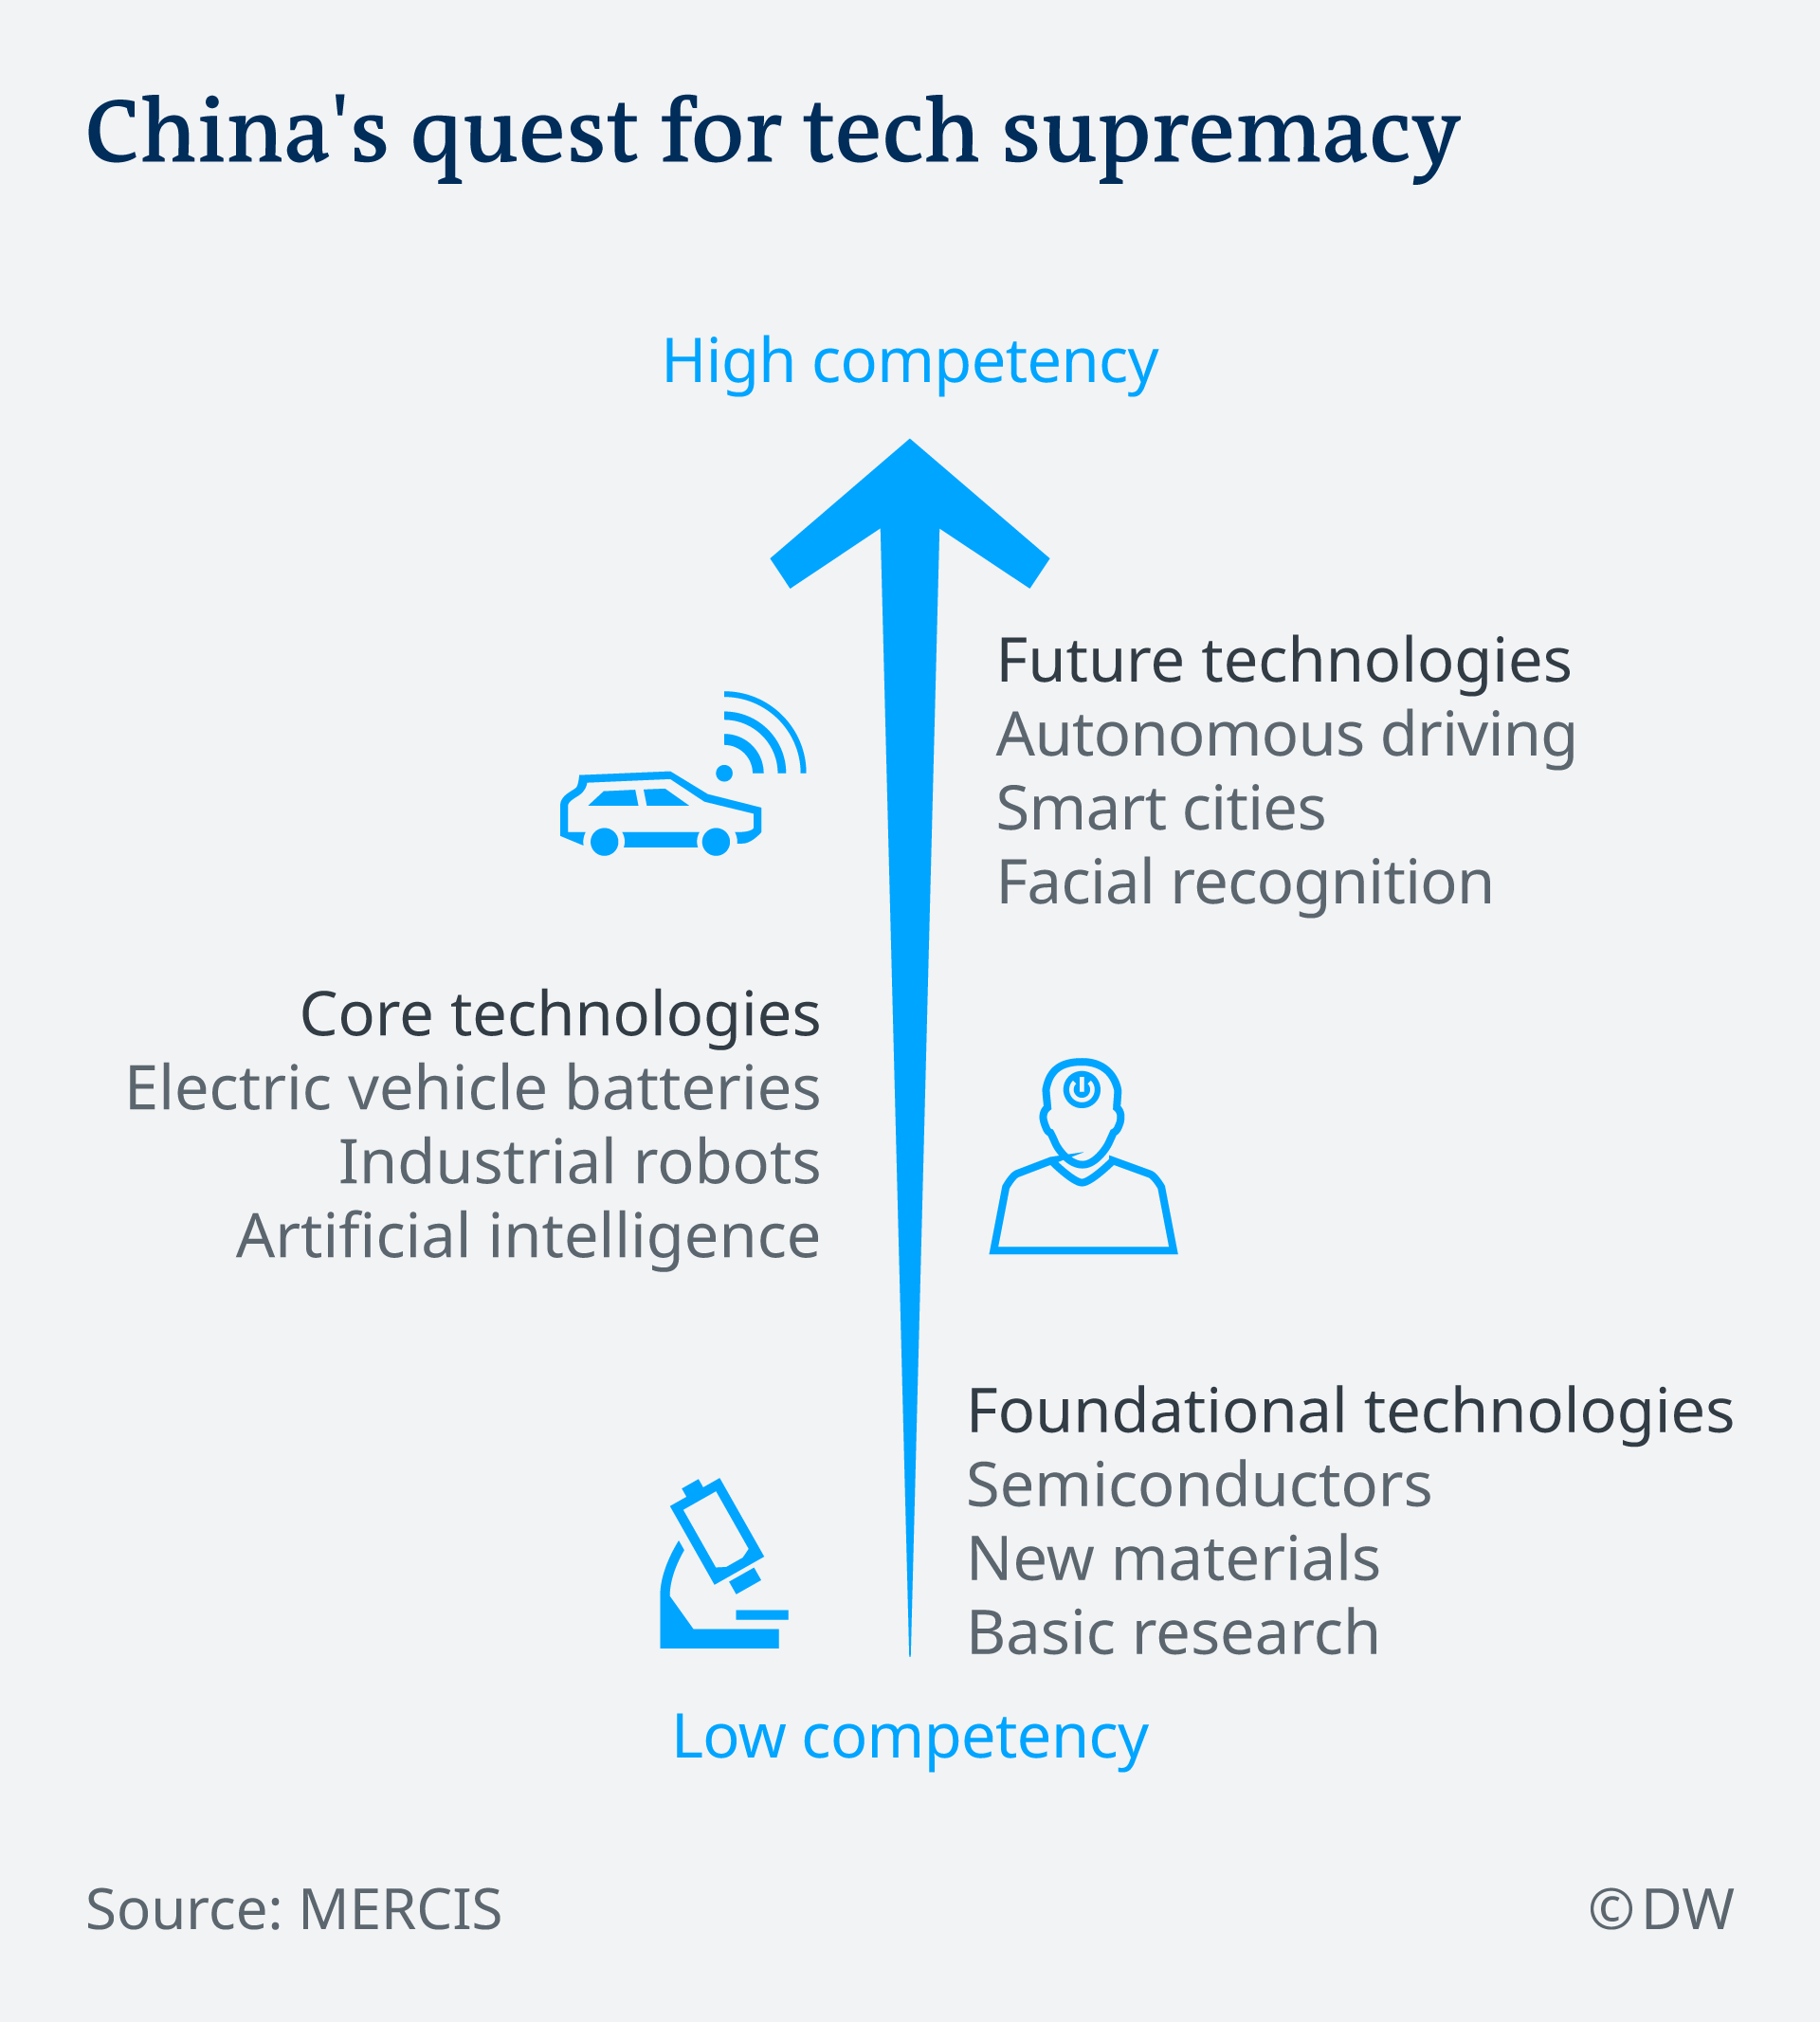 China's quest for tech supremacy